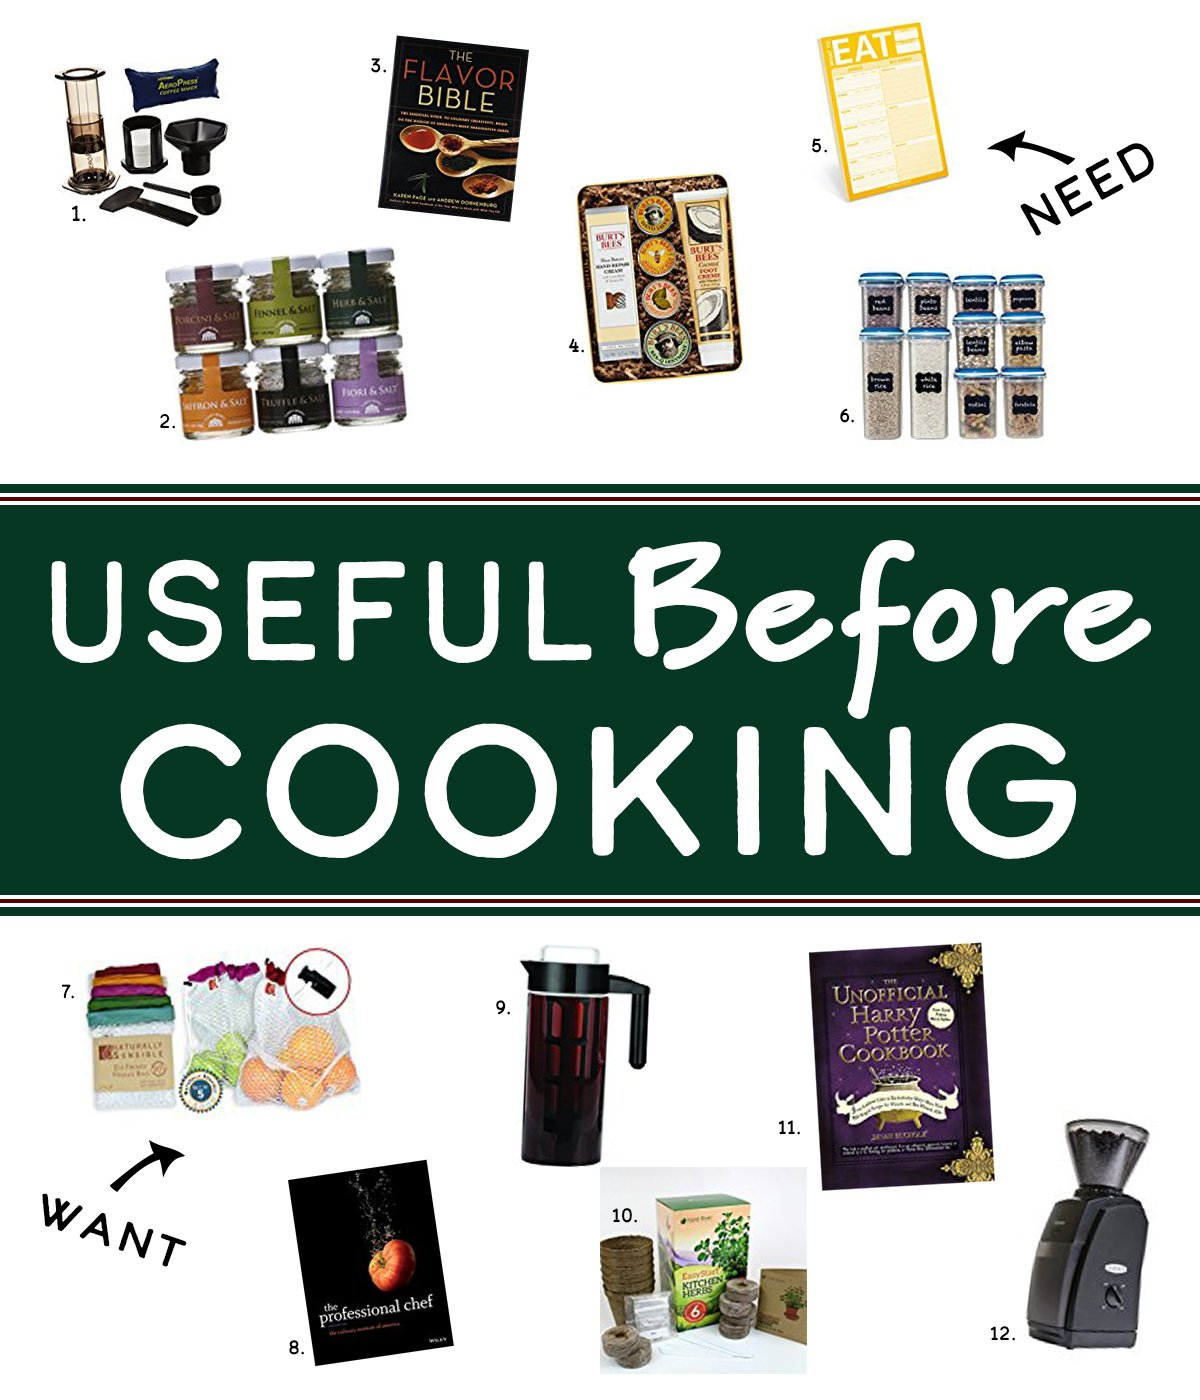 Holiday Gift Guide for the Home Cook - Find useful things home cooks love and use every day in this year's Holiday Gift Guide for the Home Cook! Here are Useful Gift Ideas for Before Cooking!